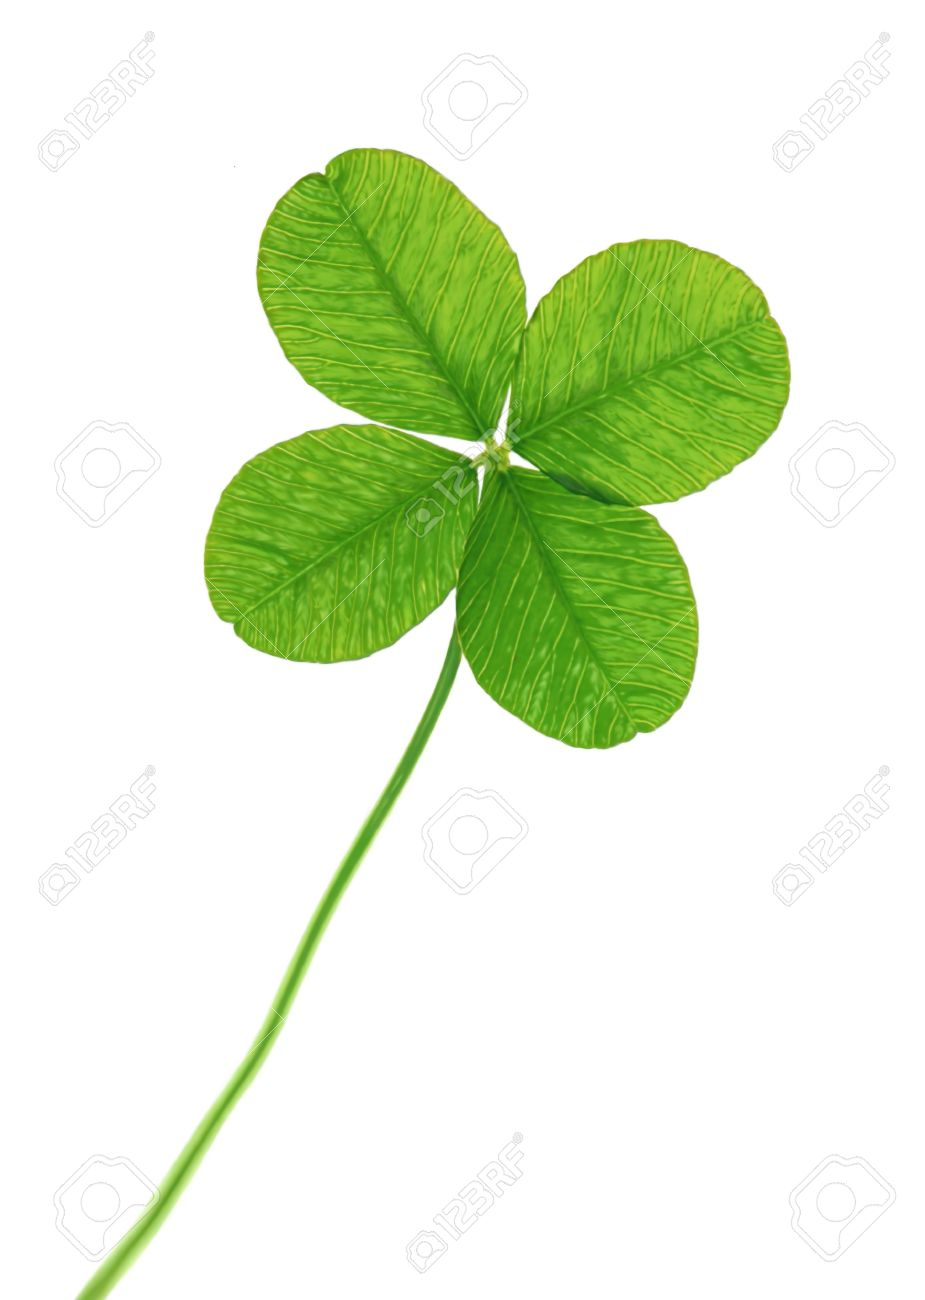 four leaf clover isolated on white background stock photo